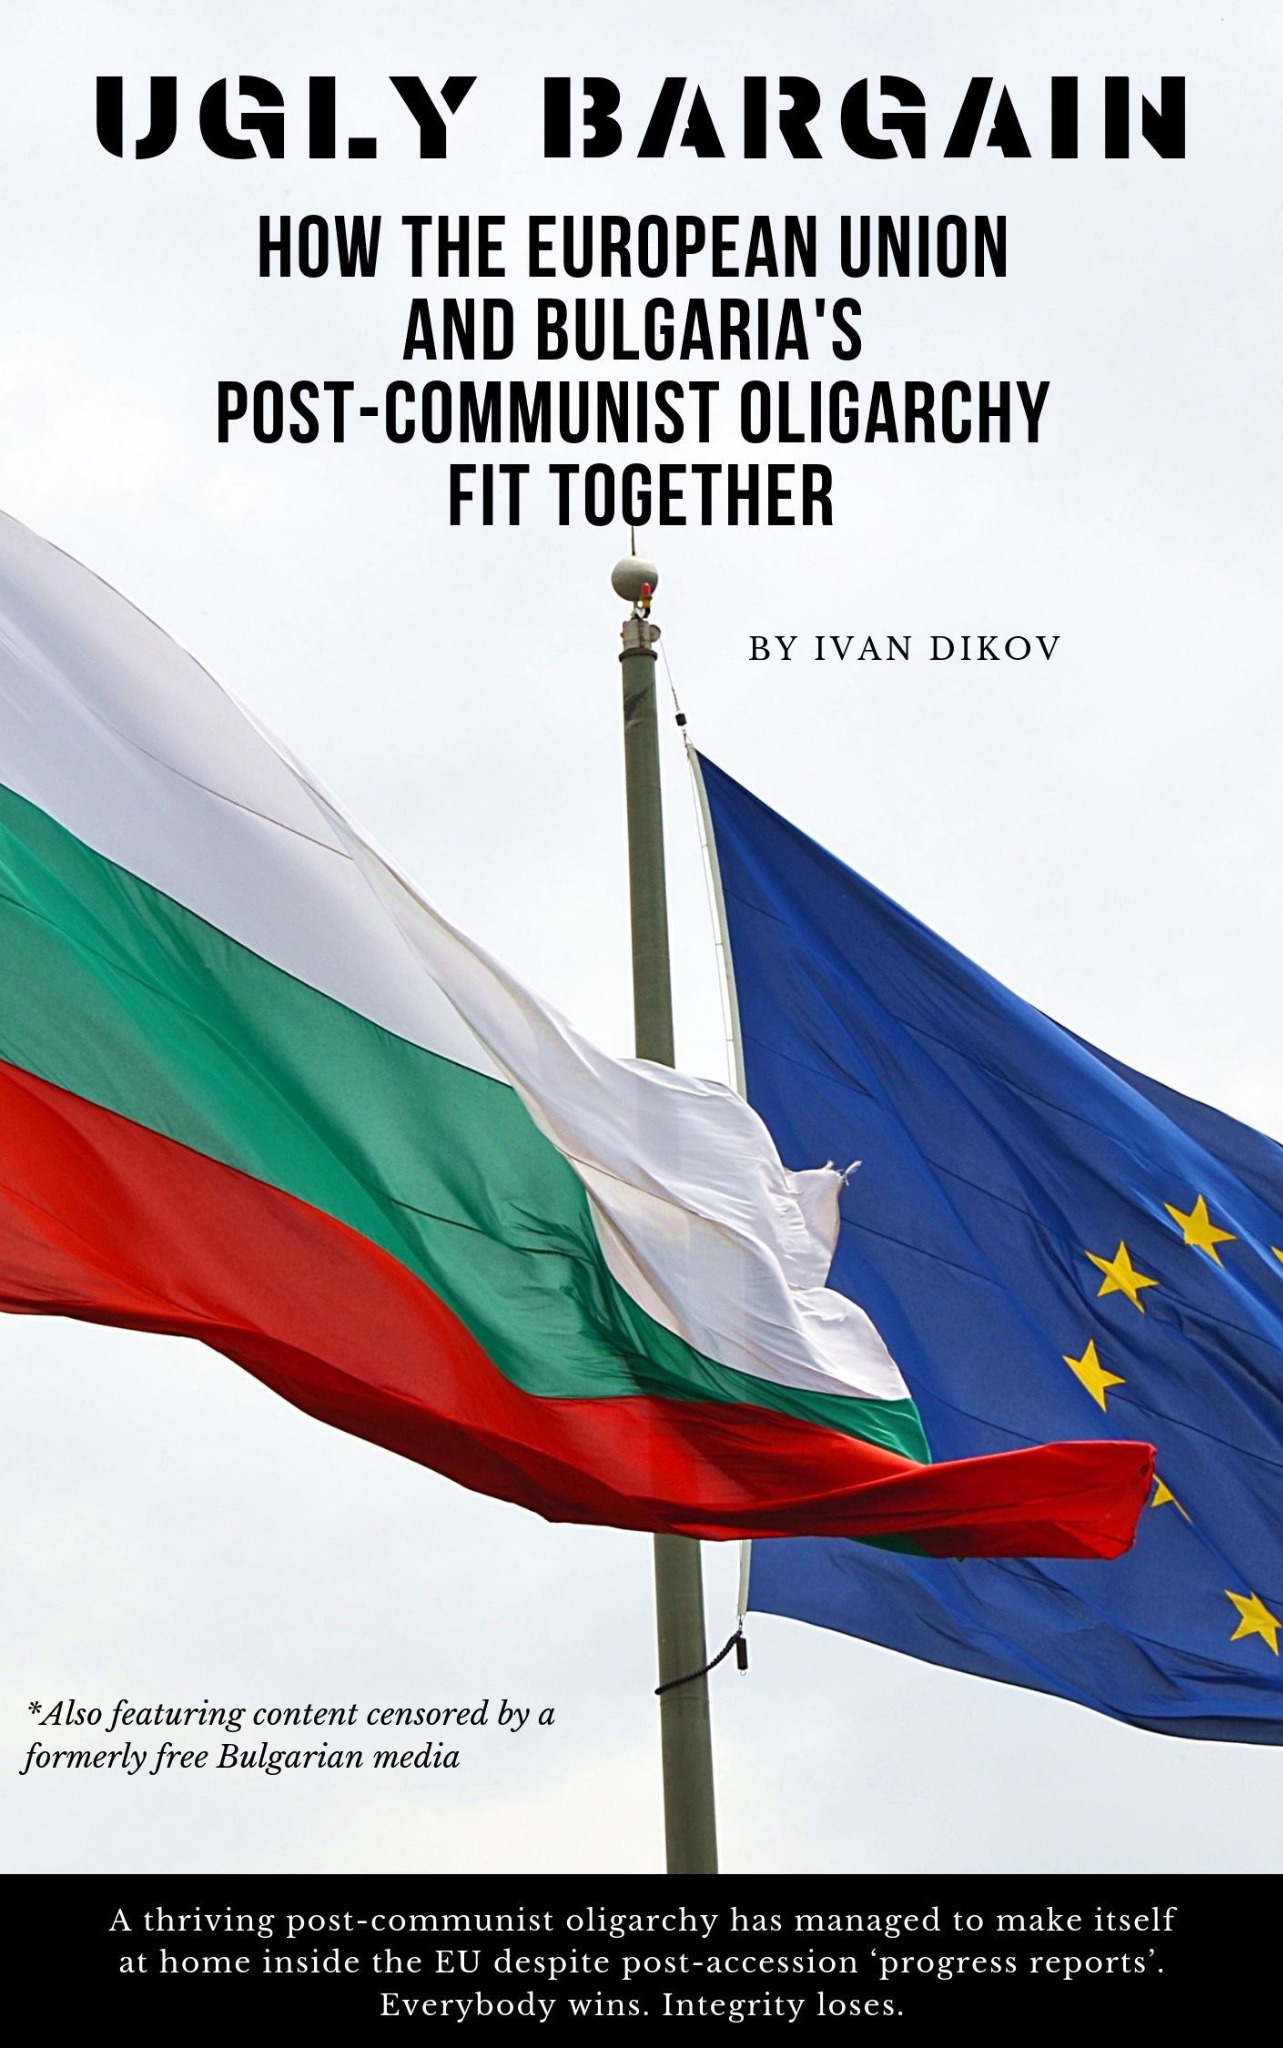 Ugly Bargain: How the European Union and Bulgaria's Post-Communist Oligarchy Fit Together